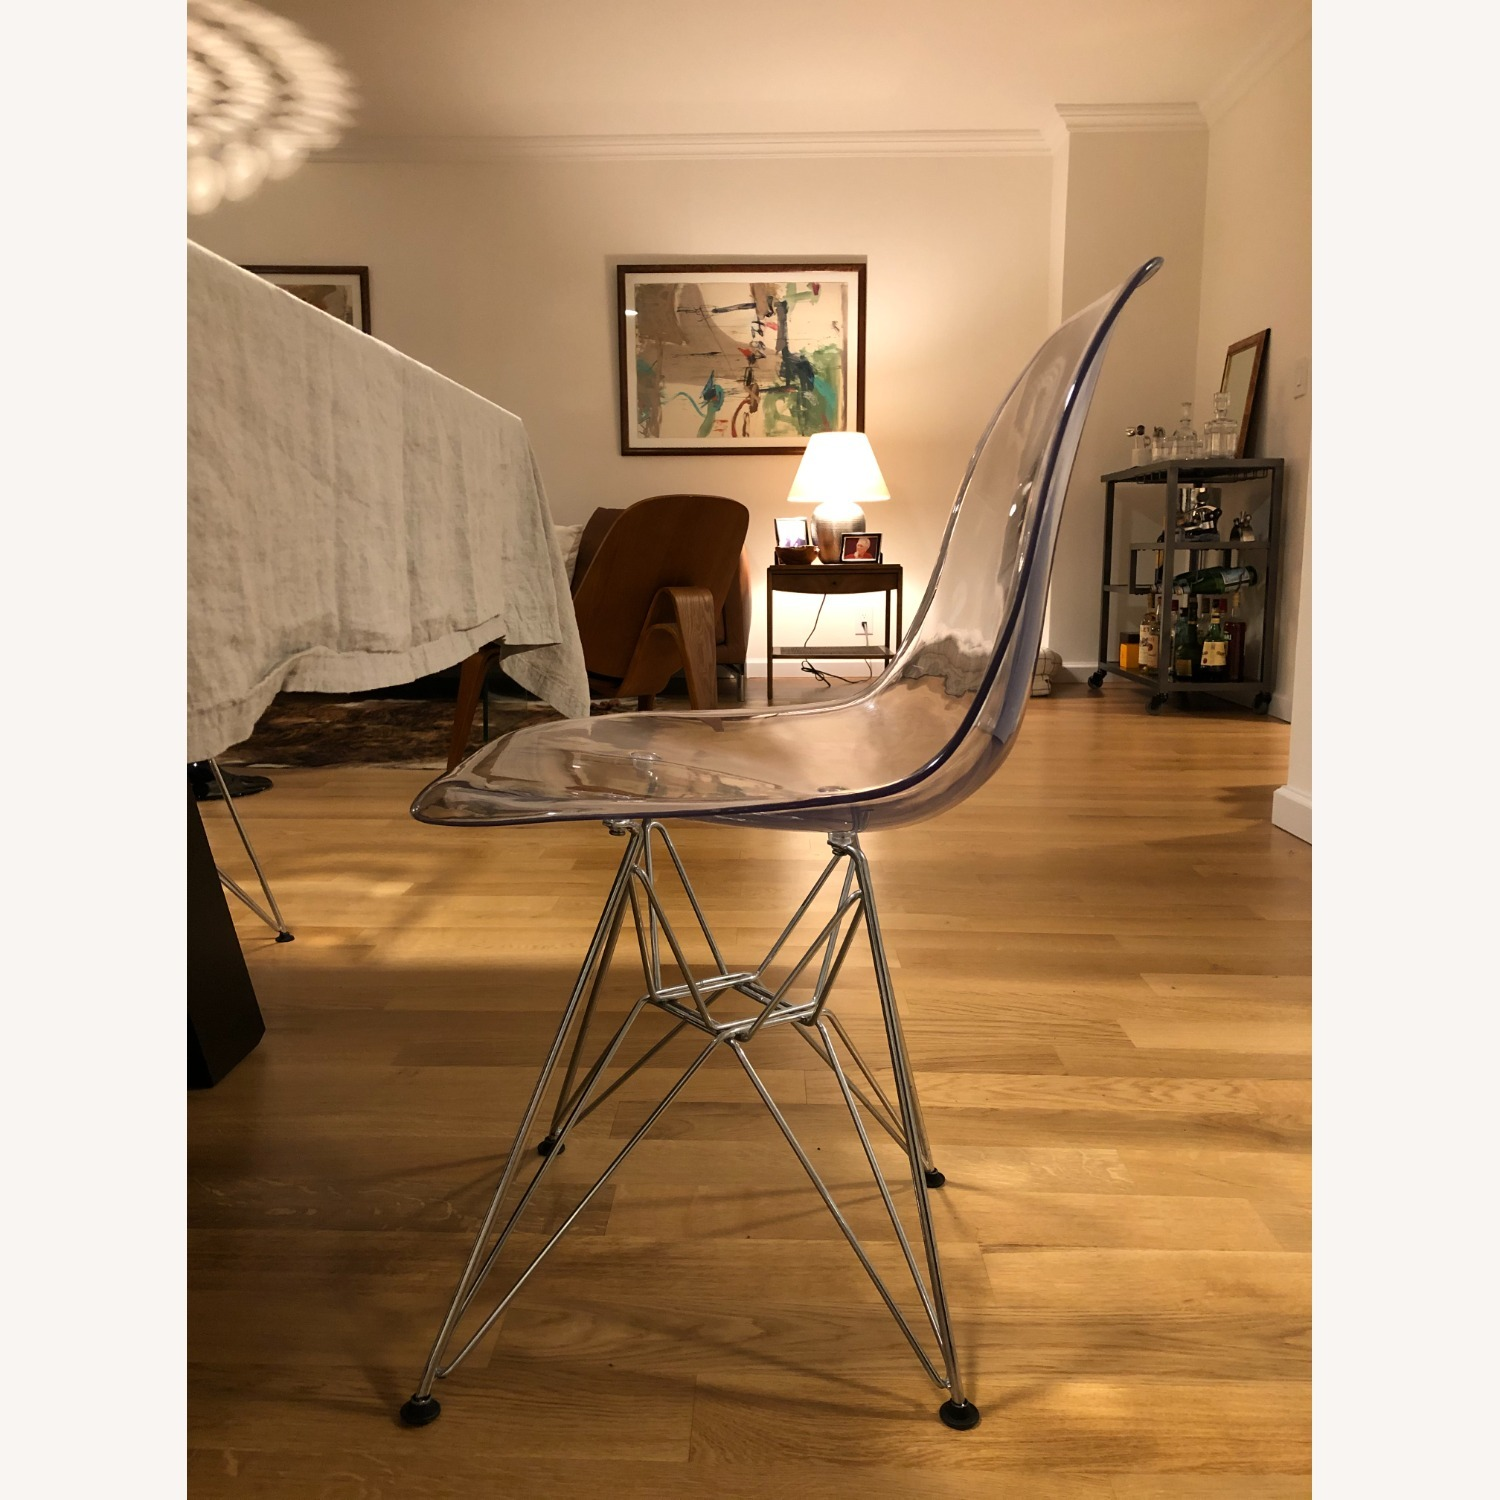 Sit Down New York Mid-Century Dining Chairs - image-3